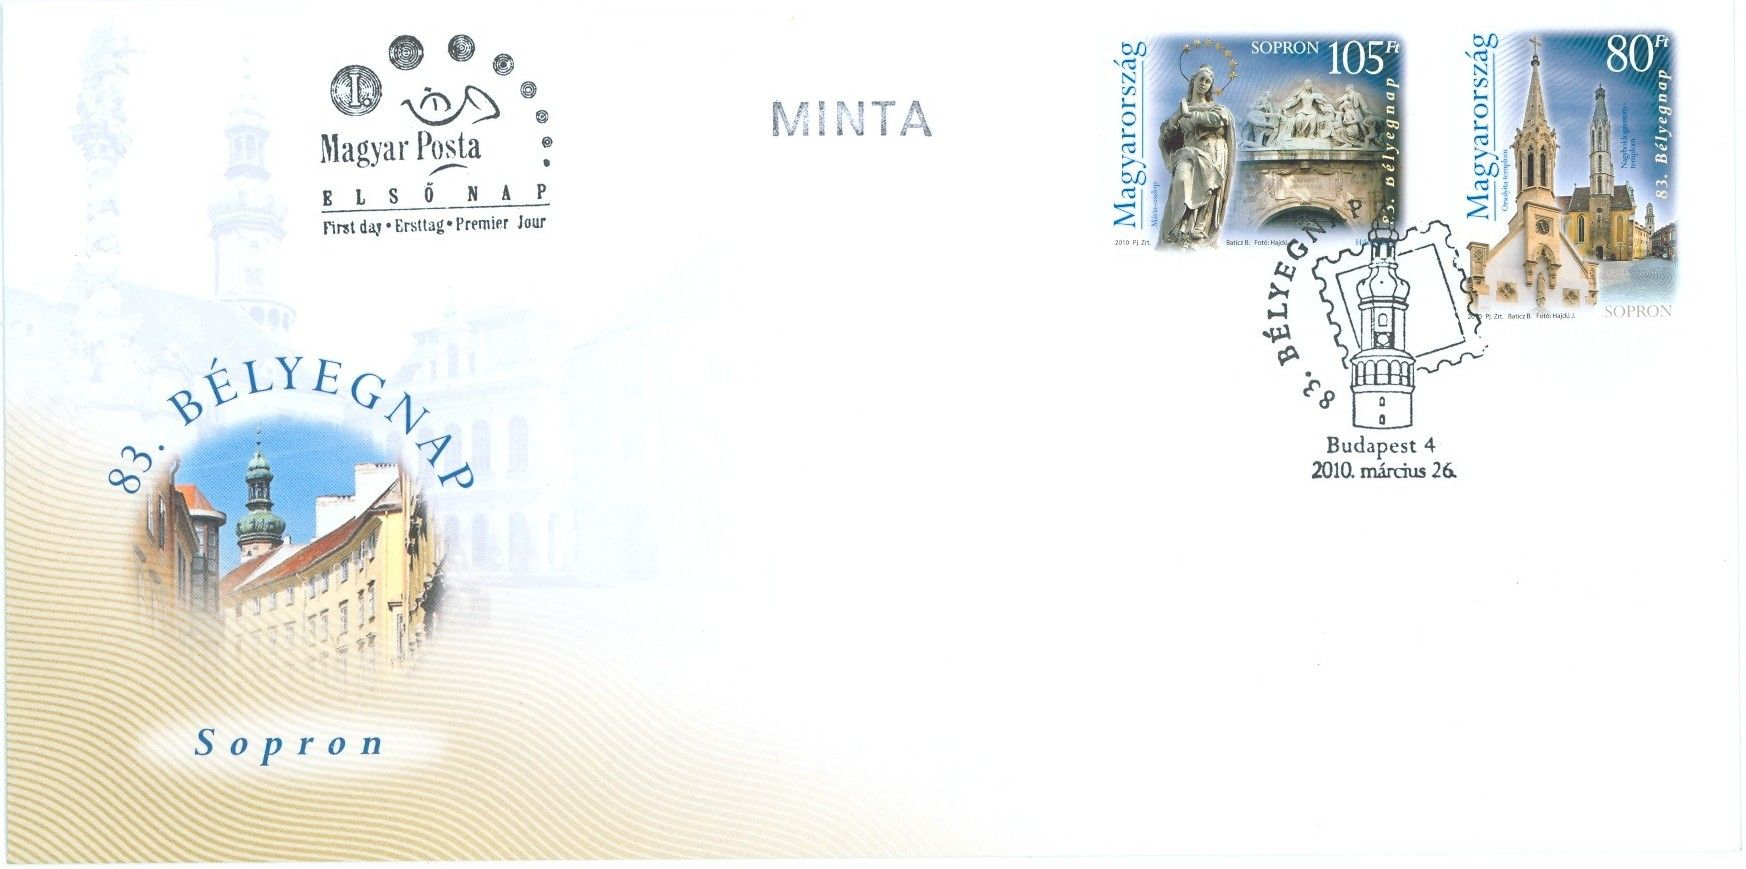 83rd day of stamps - Sopron serie